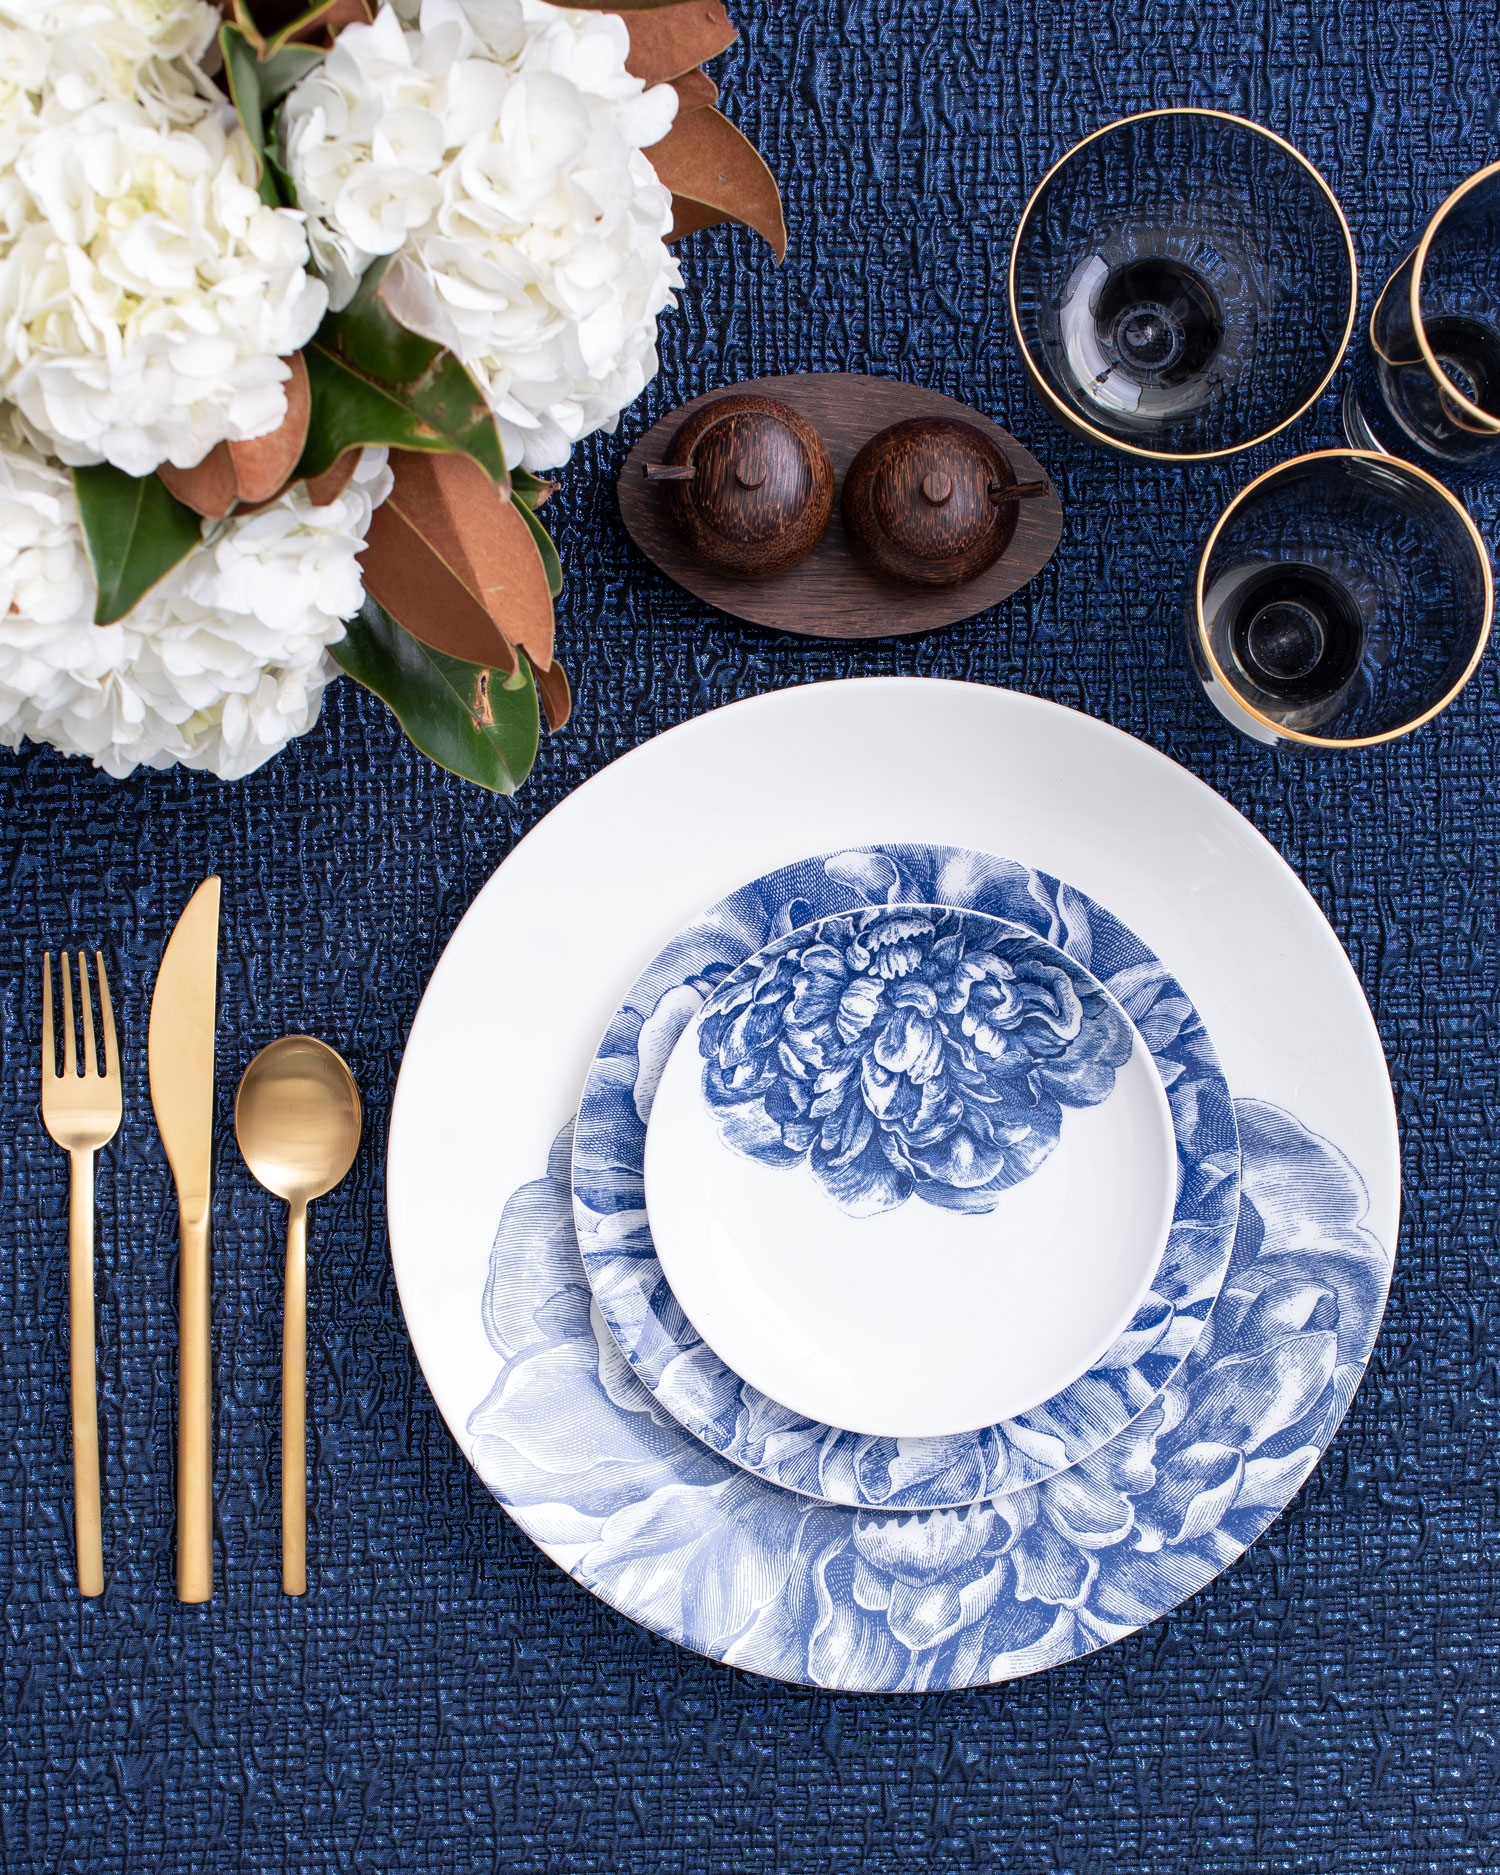 Maison de Carine tabletop company blue and white flower print tabletop place setting wedding ideas